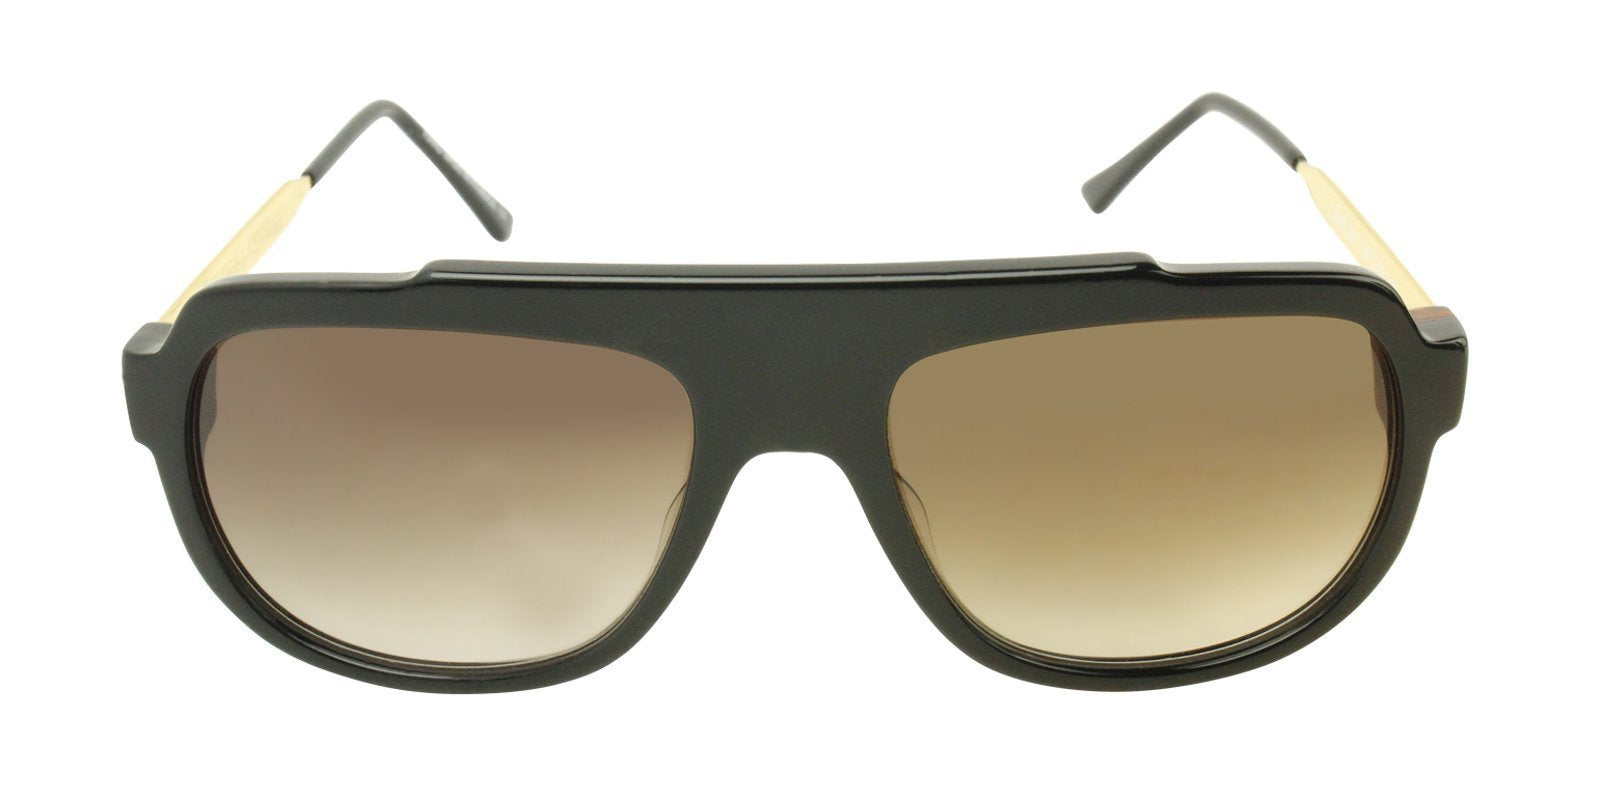 Thierry Lasry Sunglasses & Glasses | Designer Eyes